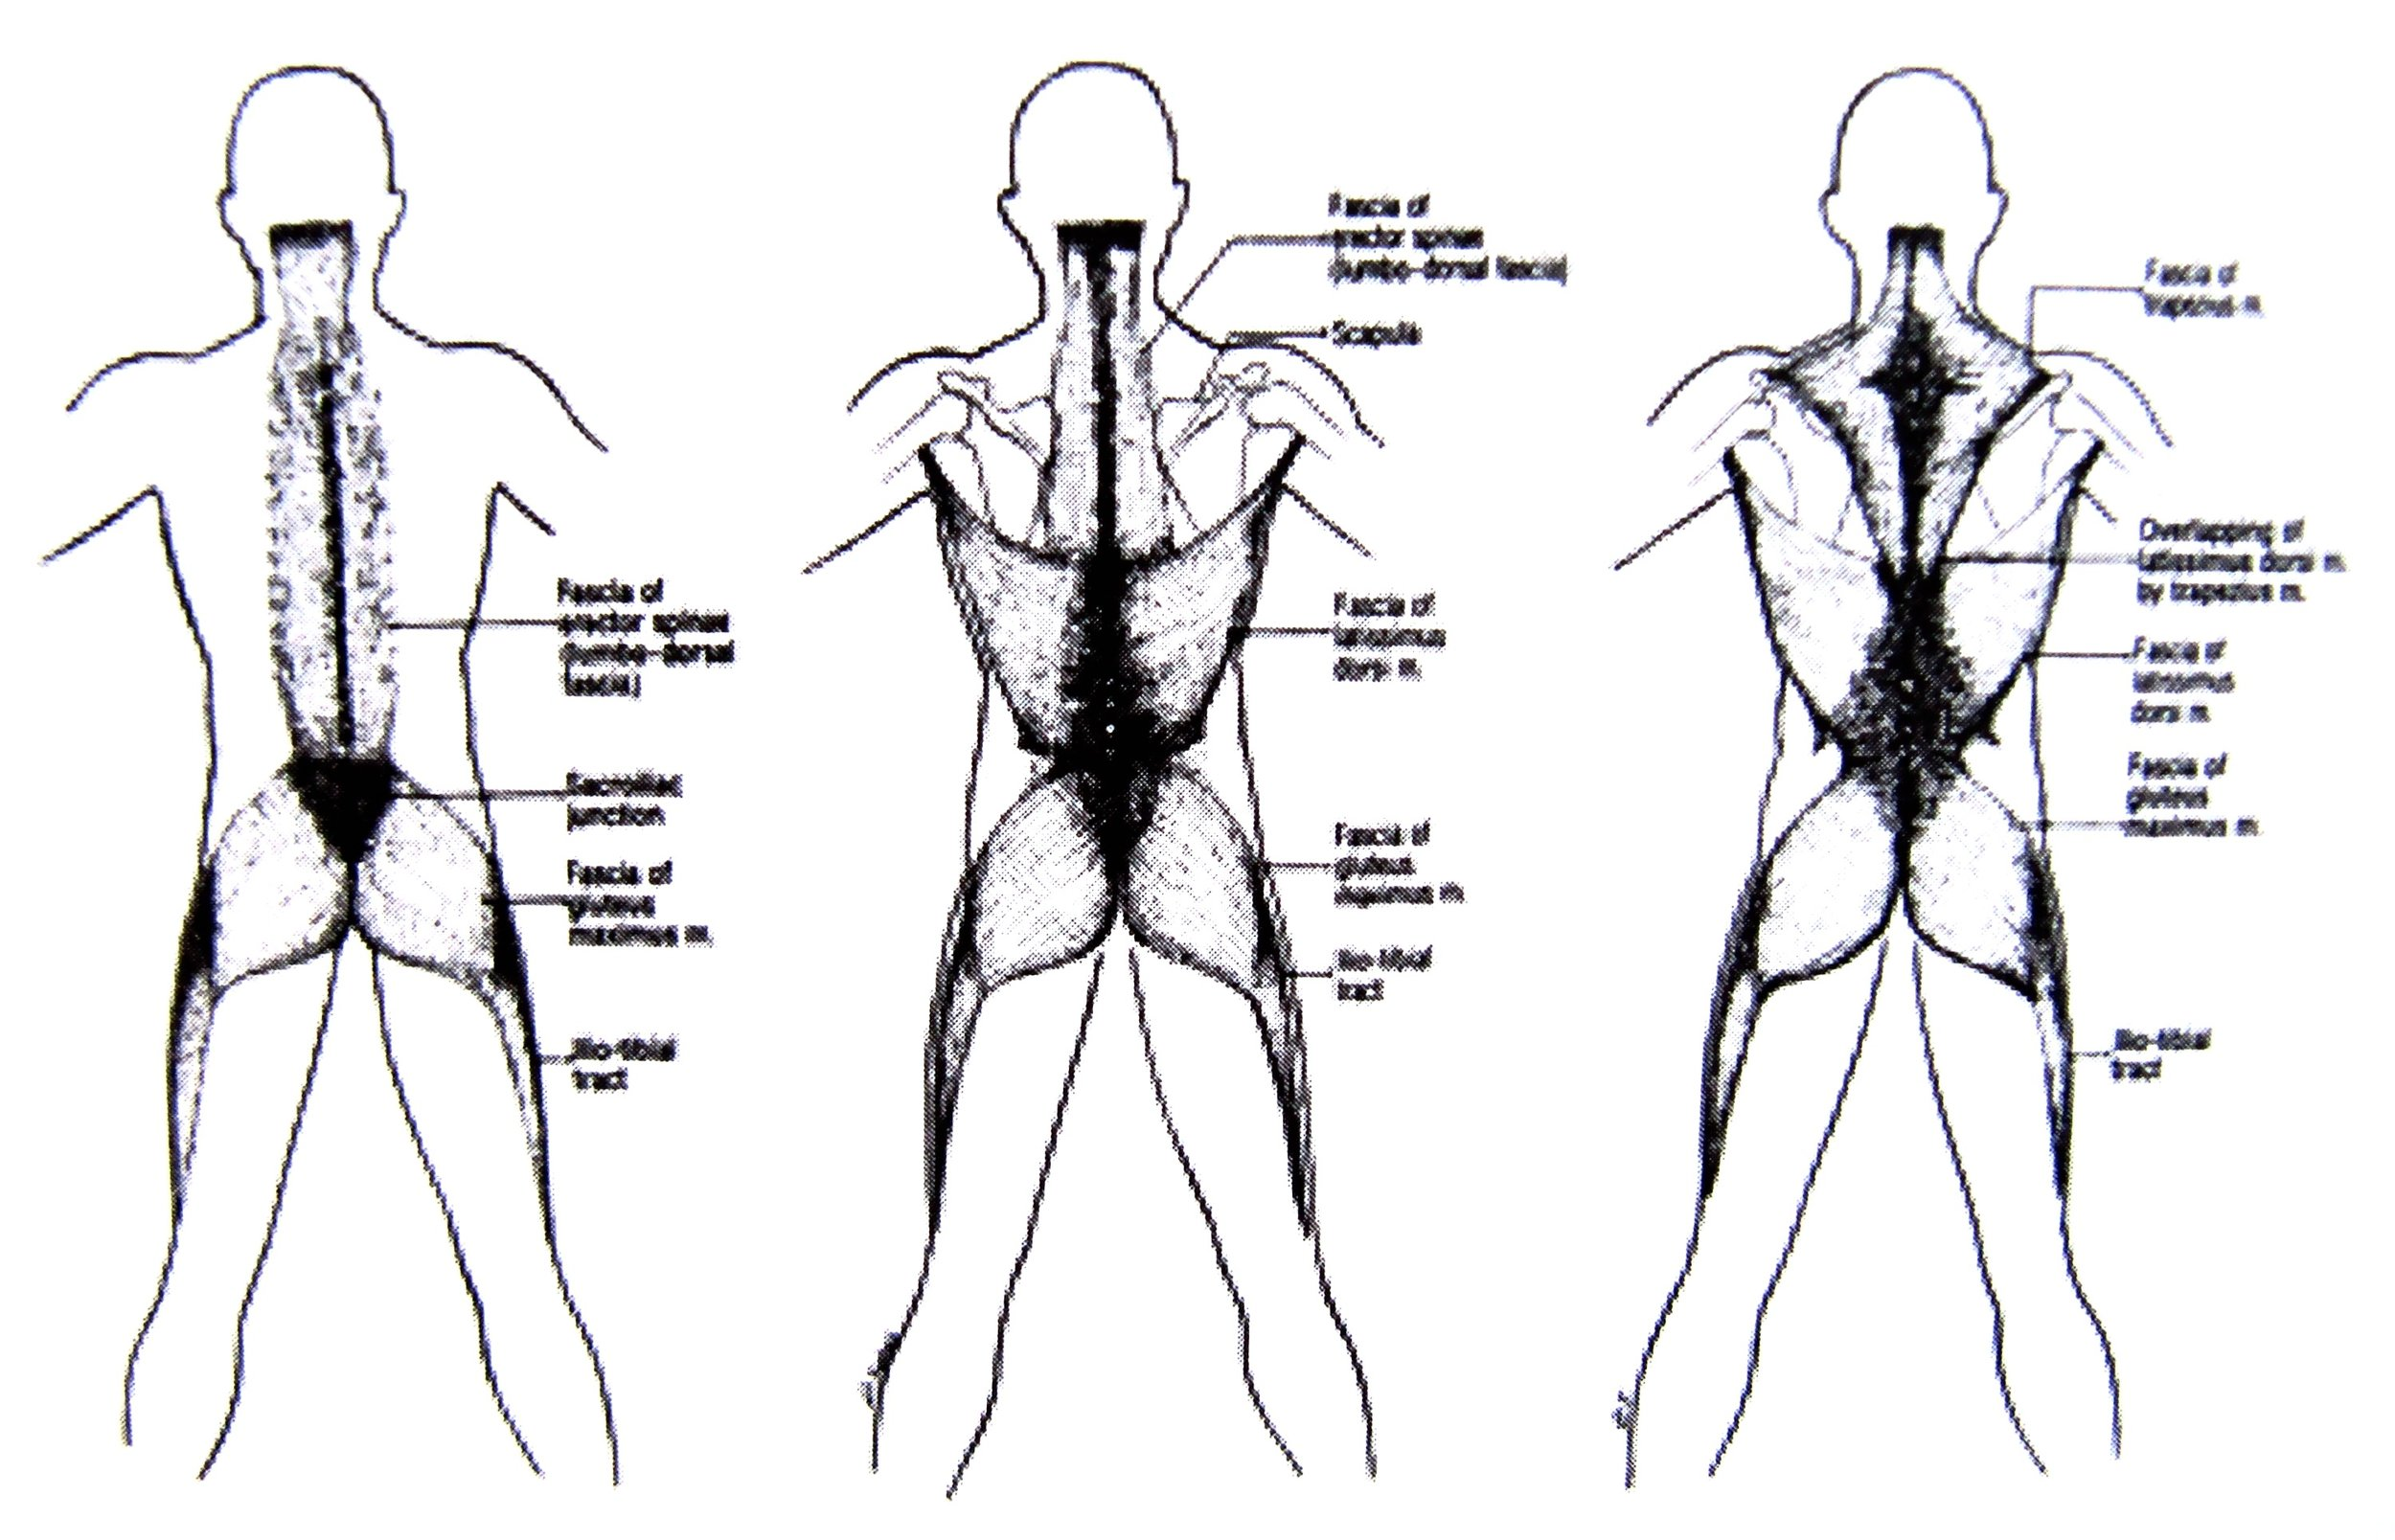 Schultz, R. L. & Fetis, R.  E   ndless Web: Fascial Anatomy & Physical Reality  . North Atlantic Books, 1996.